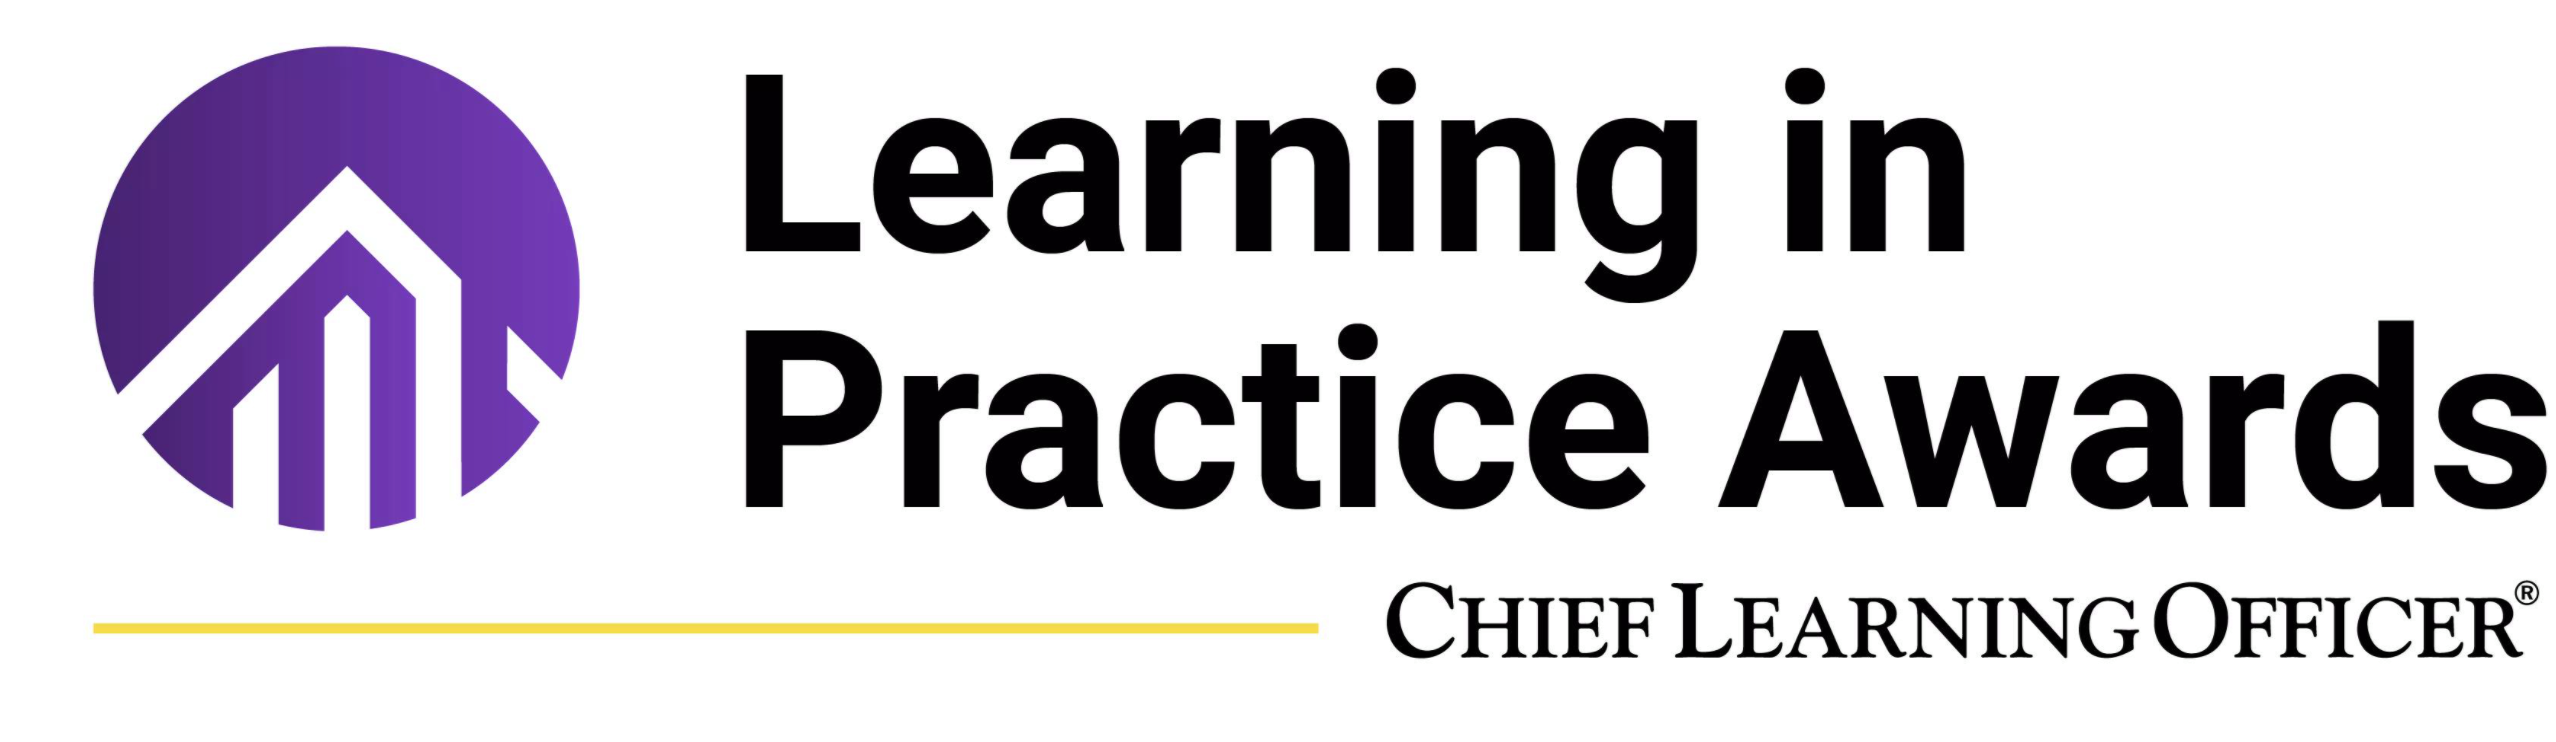 CLO Media - Learning in Practice Award